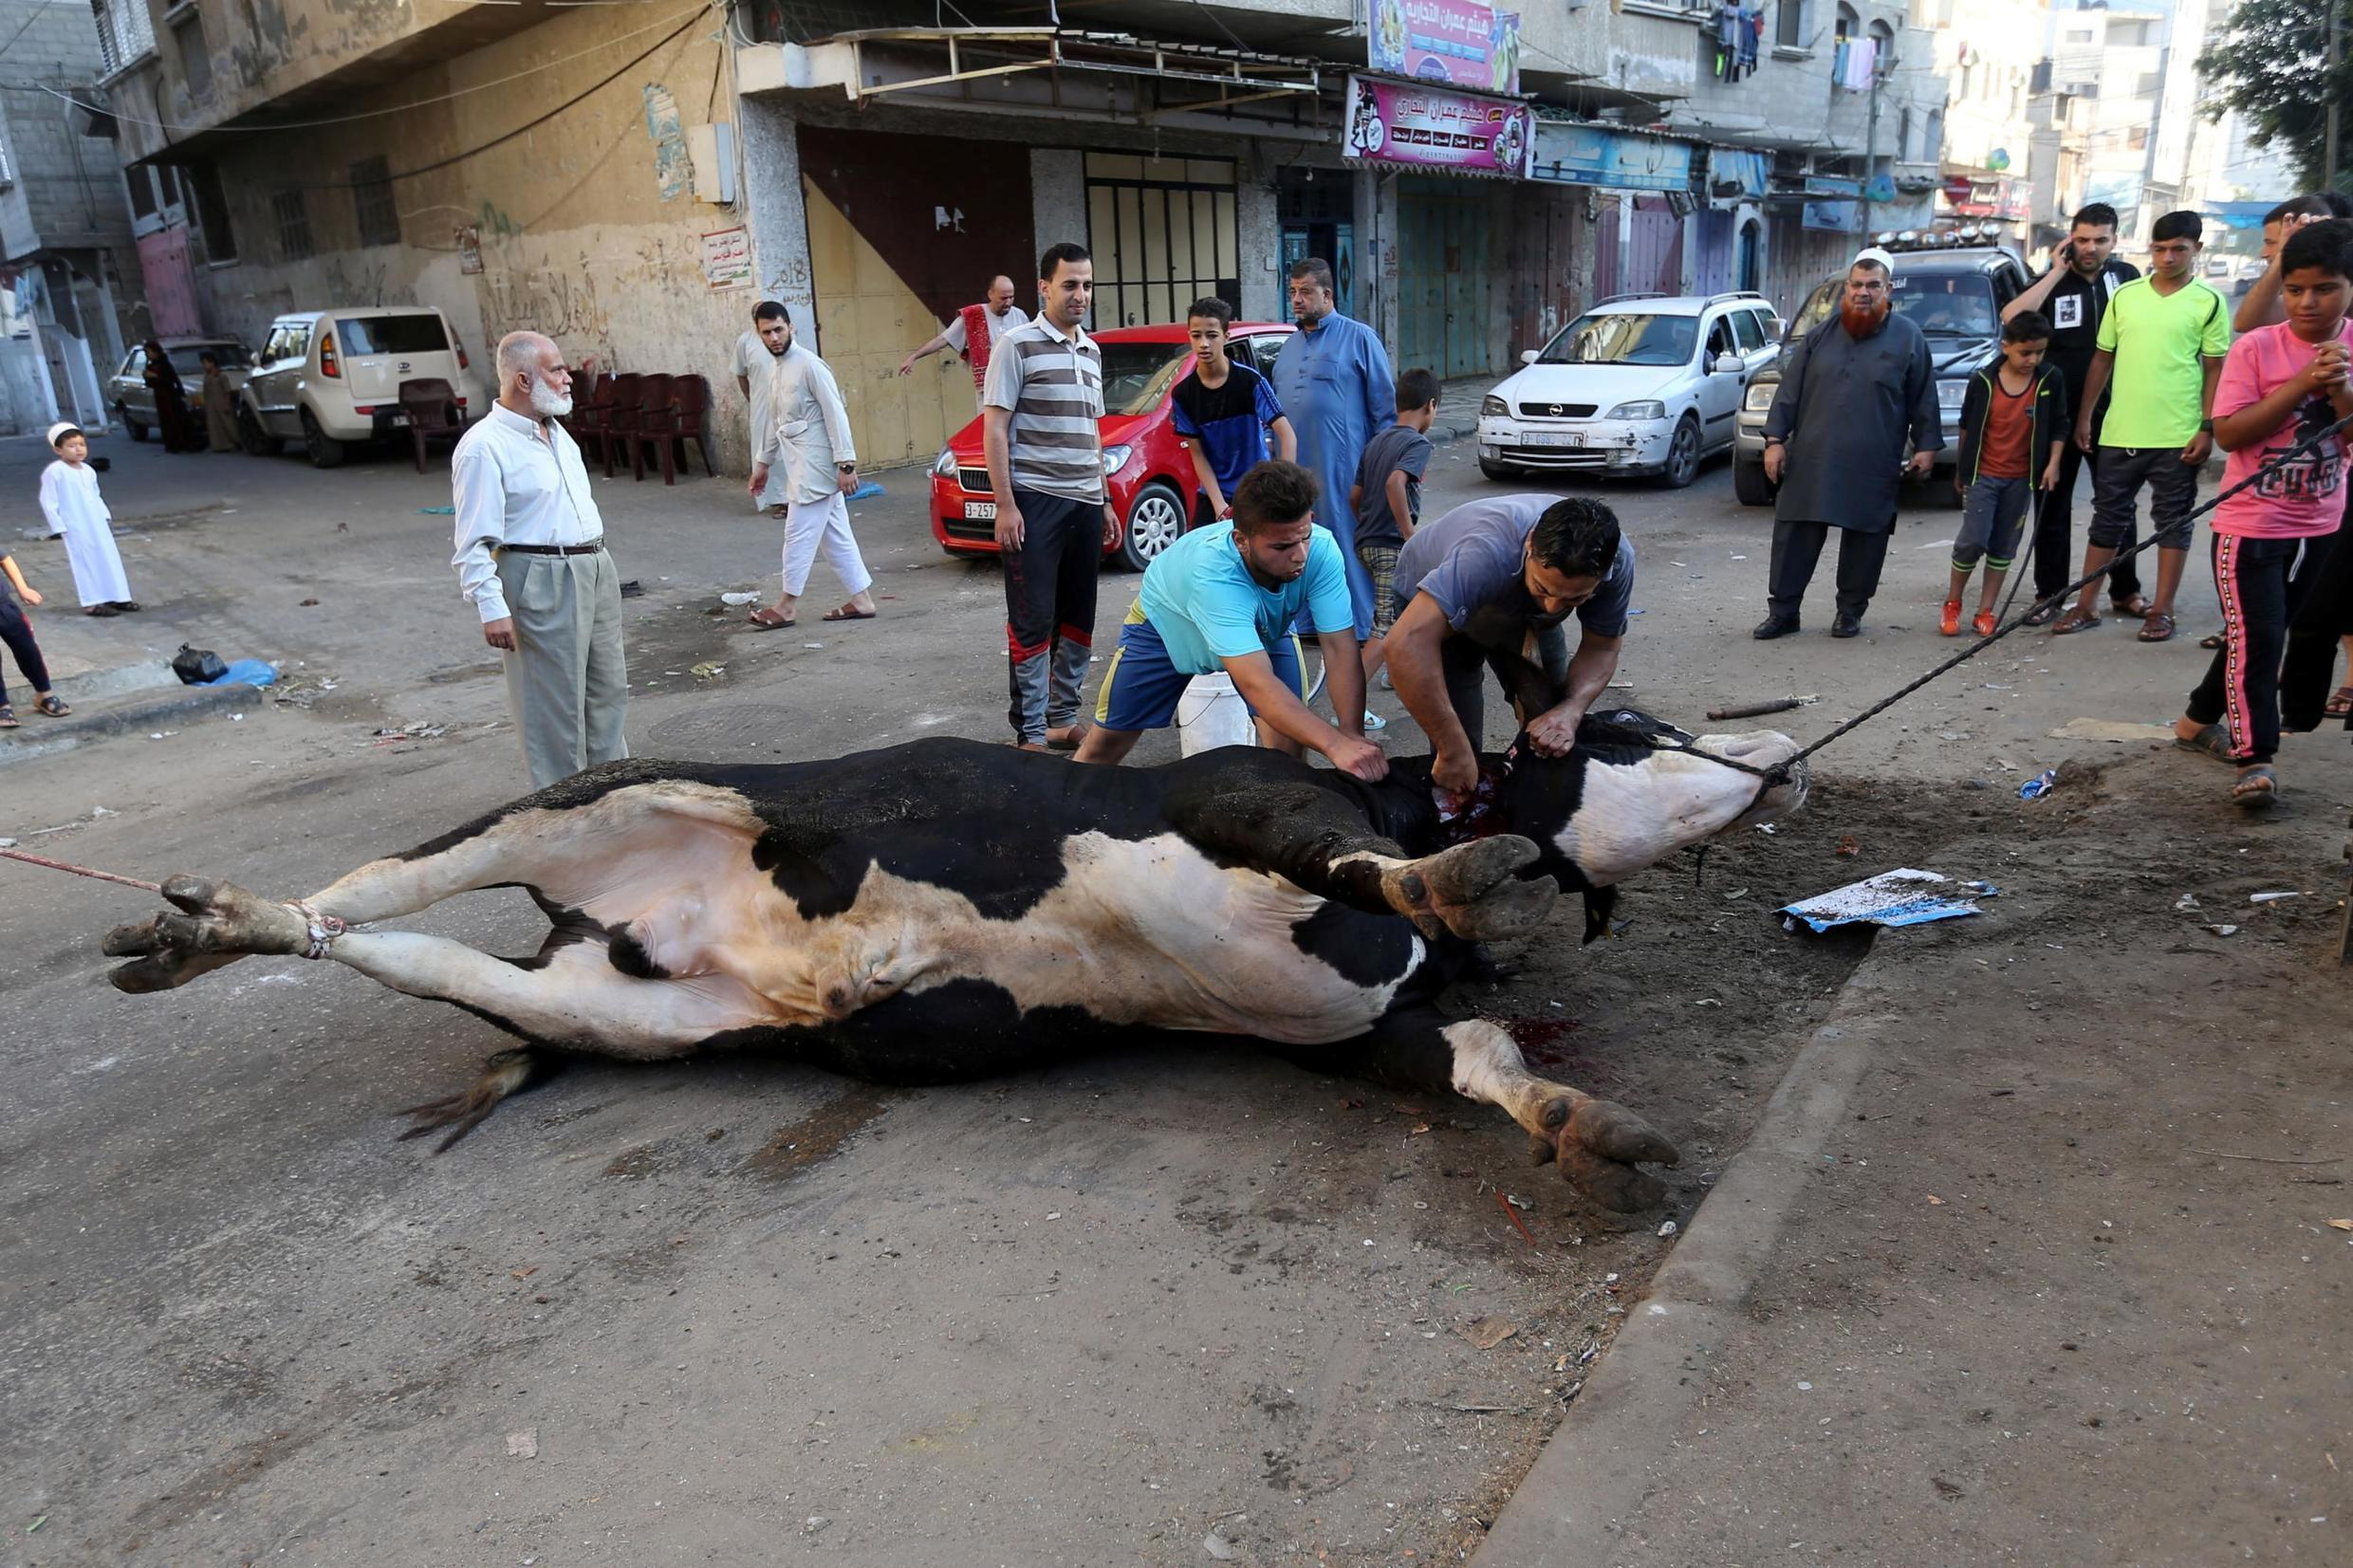 Palestinians slaughter a calf on the first day of Eid al-Adha festival in Khan Younis in the southern Gaza Strip August 11, 2019.